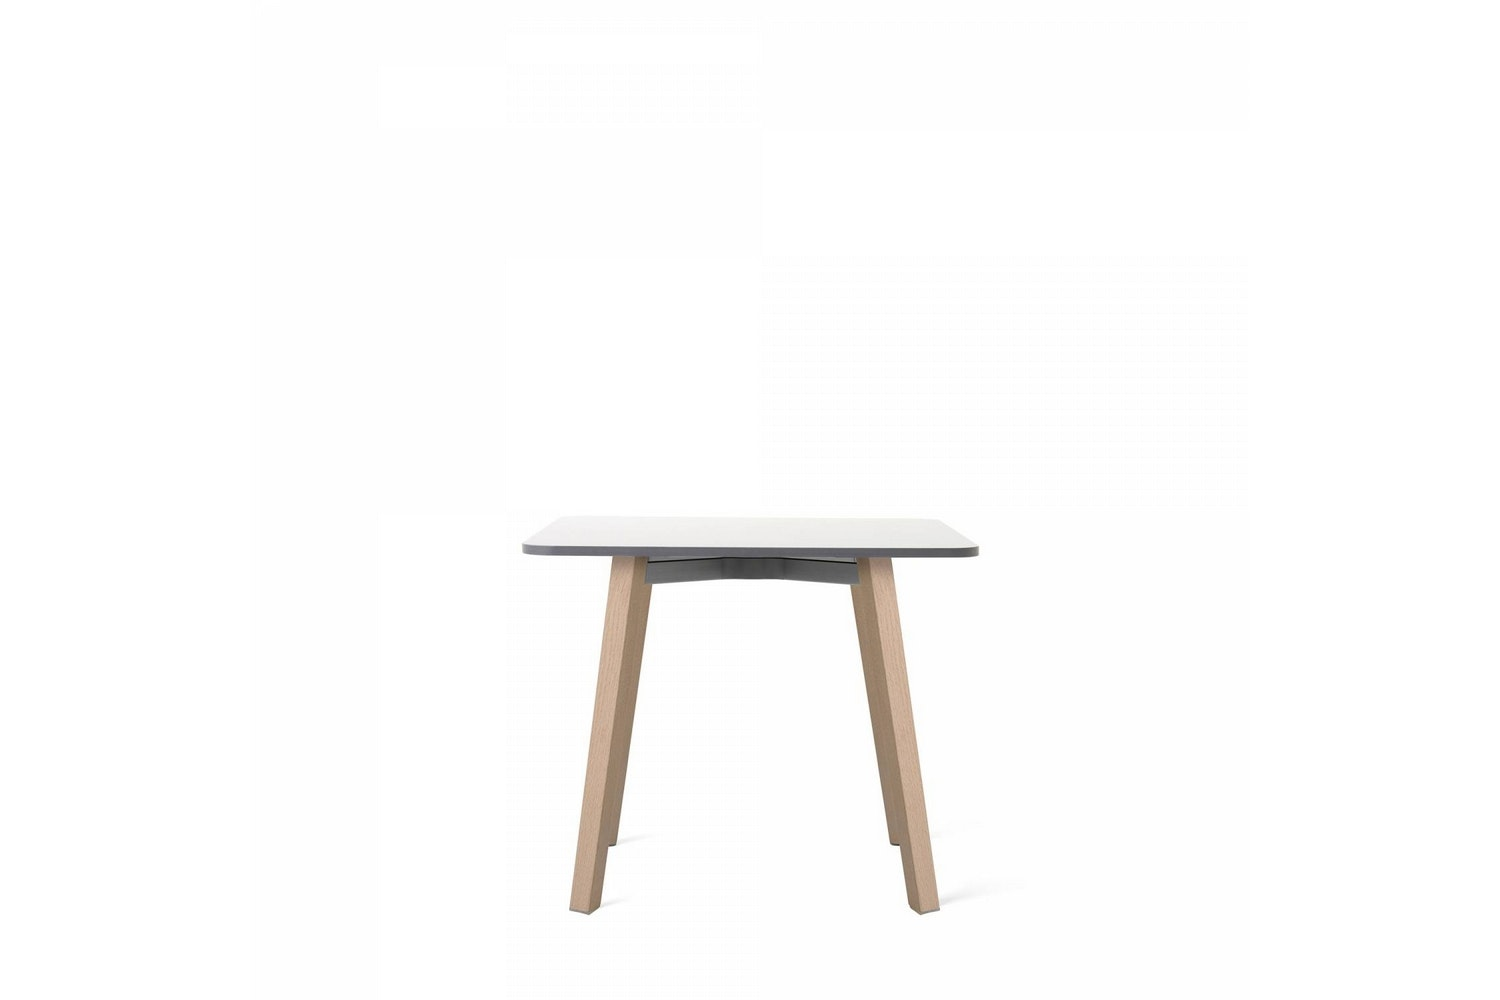 SU Table by Nendo for Emeco